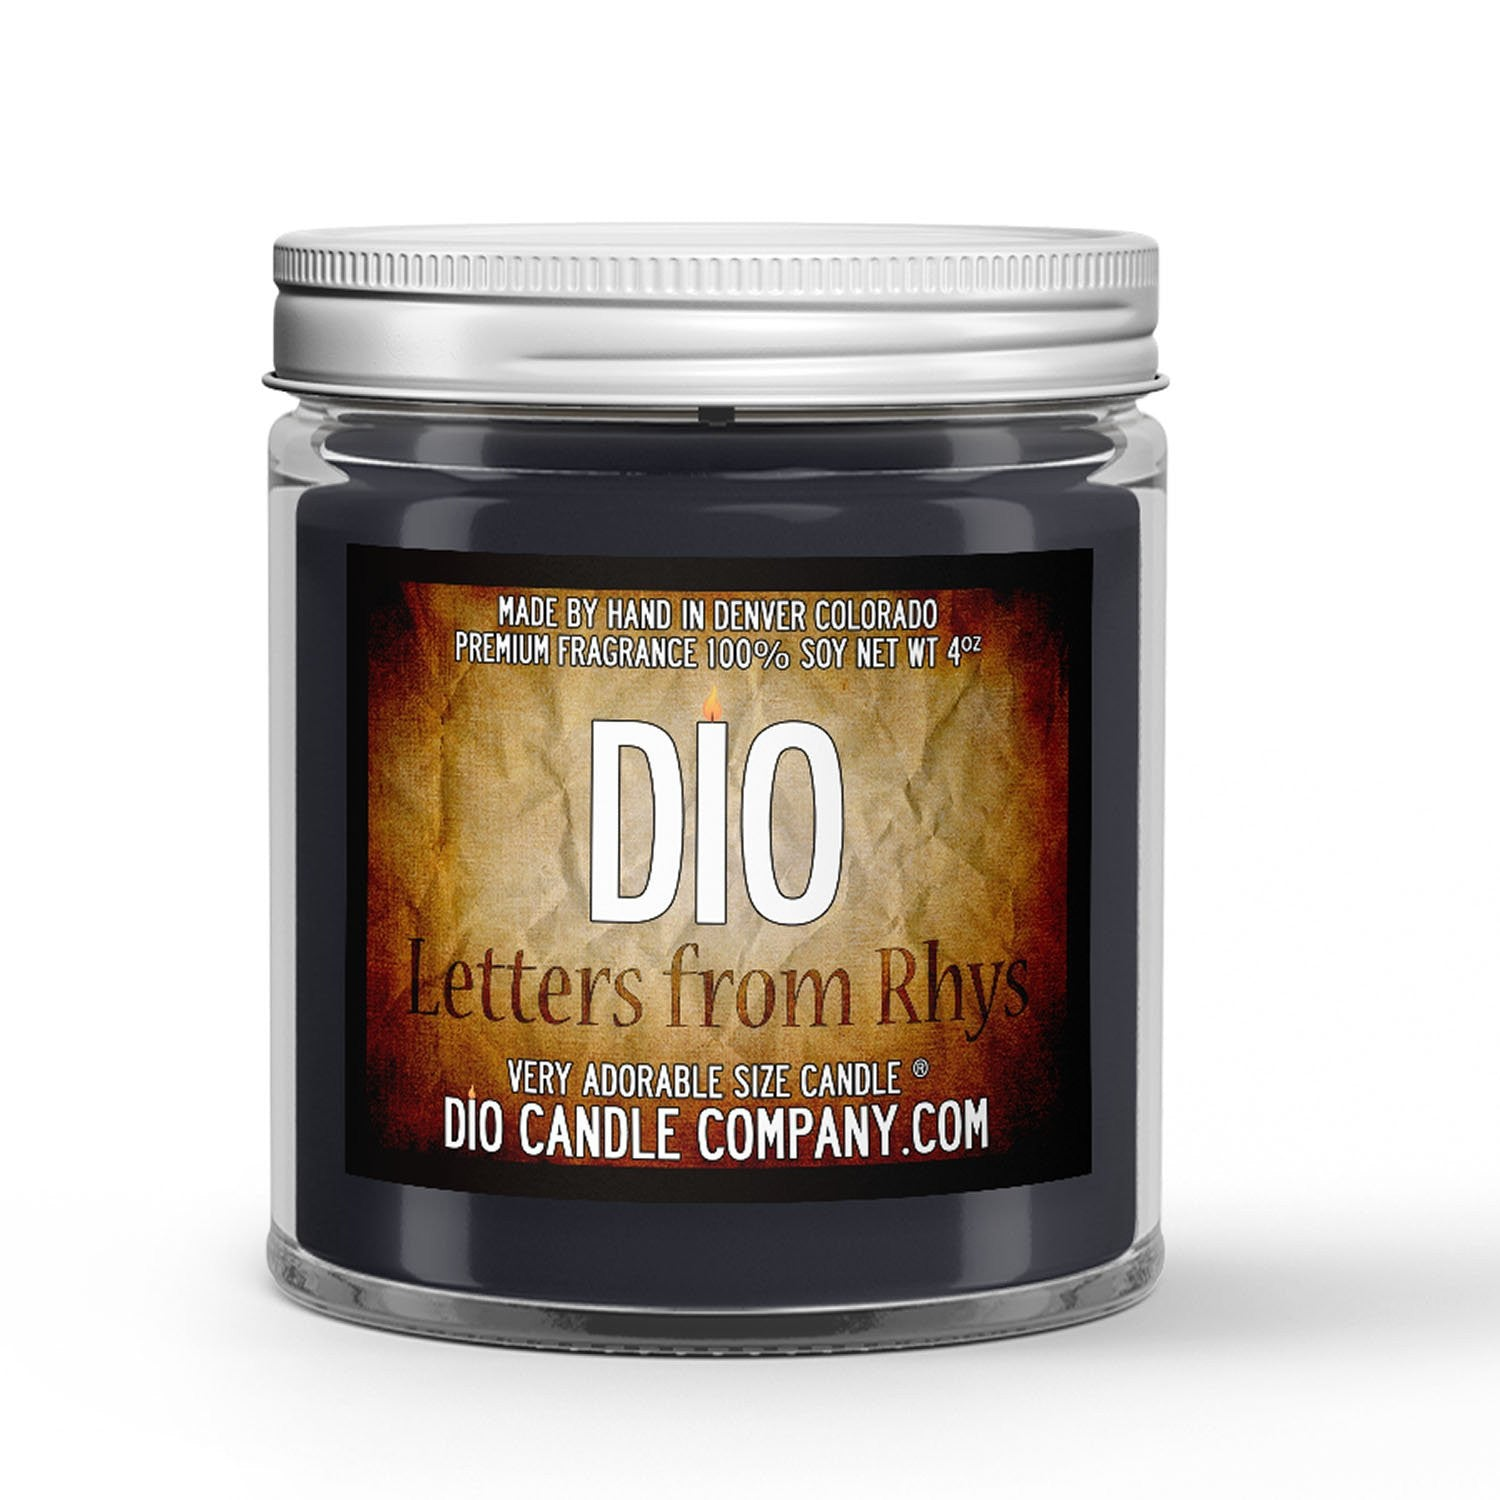 Letters From Rhys Candle - Parchment - Jasmine - Citrus - 4oz Very Adorable Size Candle® - Dio Candle Company